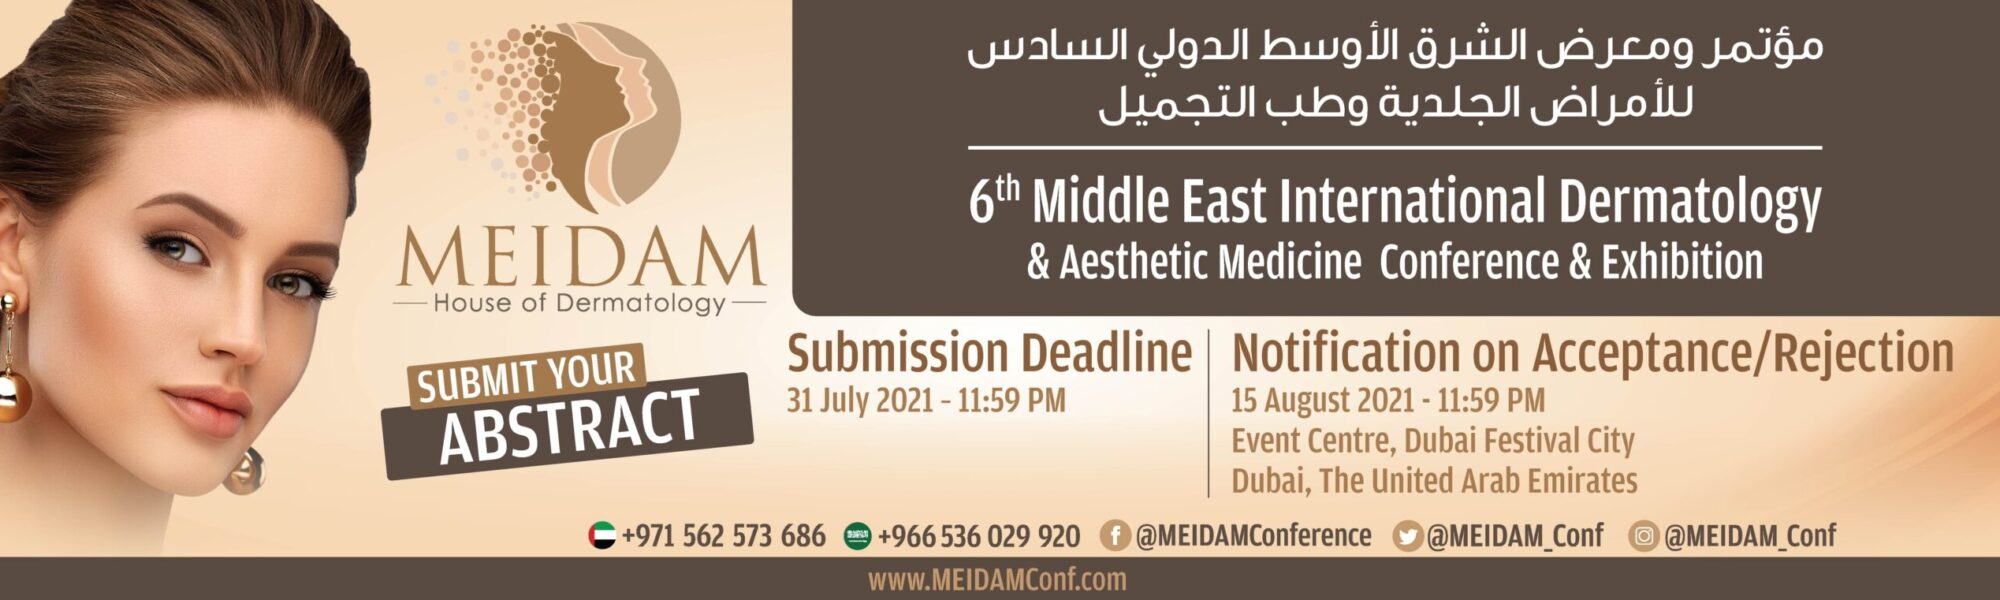 MEIDAM_Submit_Abstract_Banner-01